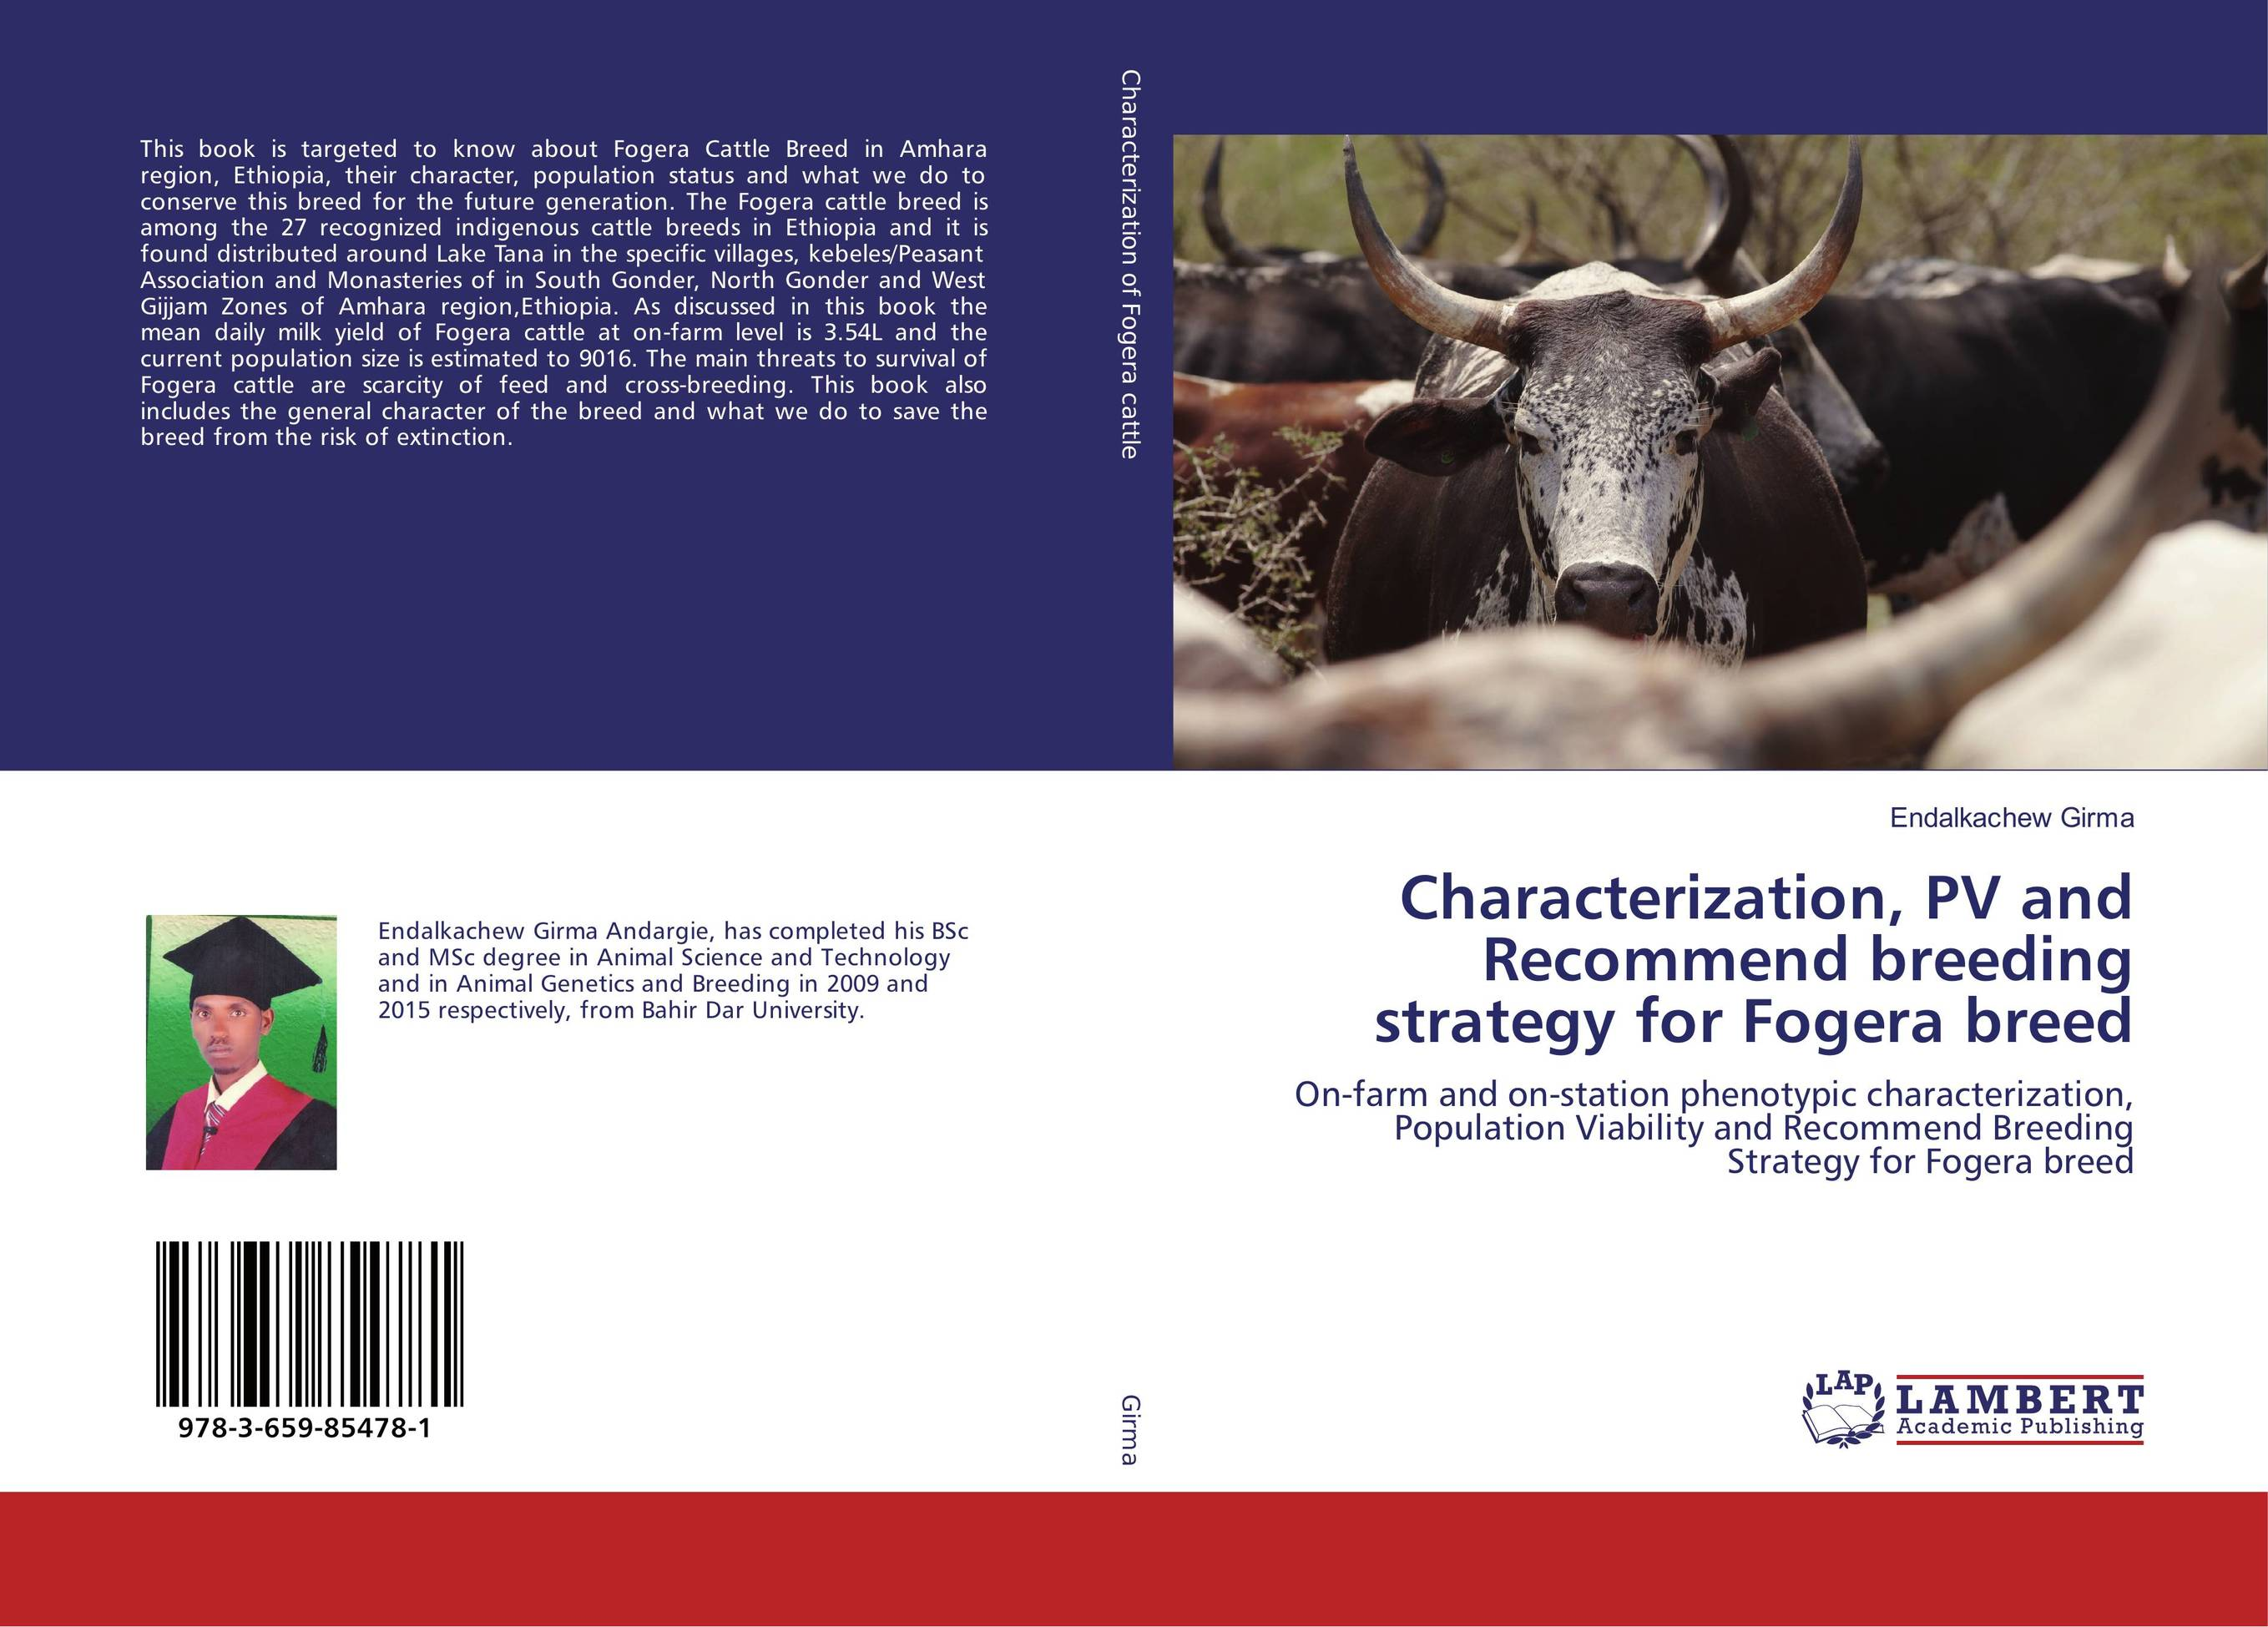 Characterization, PV and Recommend breeding strategy for Fogera breed cervical cancer in amhara region in ethiopia